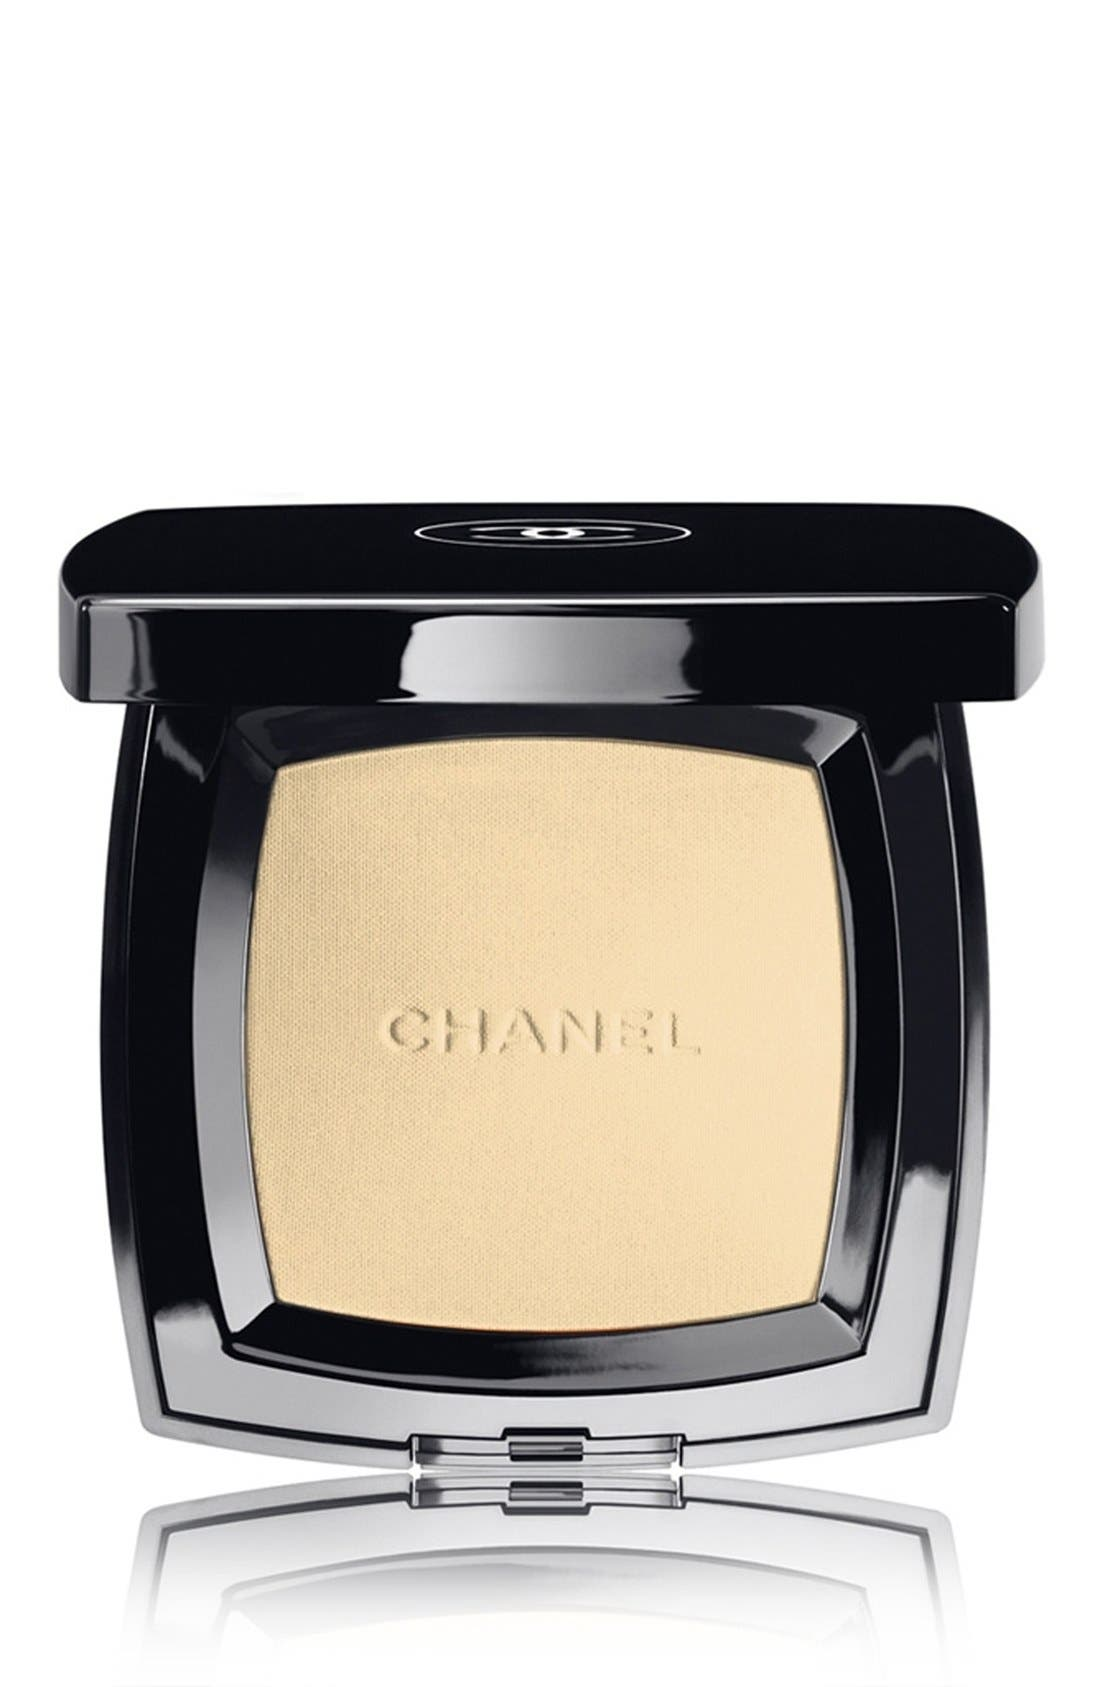 CHANEL POUDRE UNIVERSELLE COMPACTE 